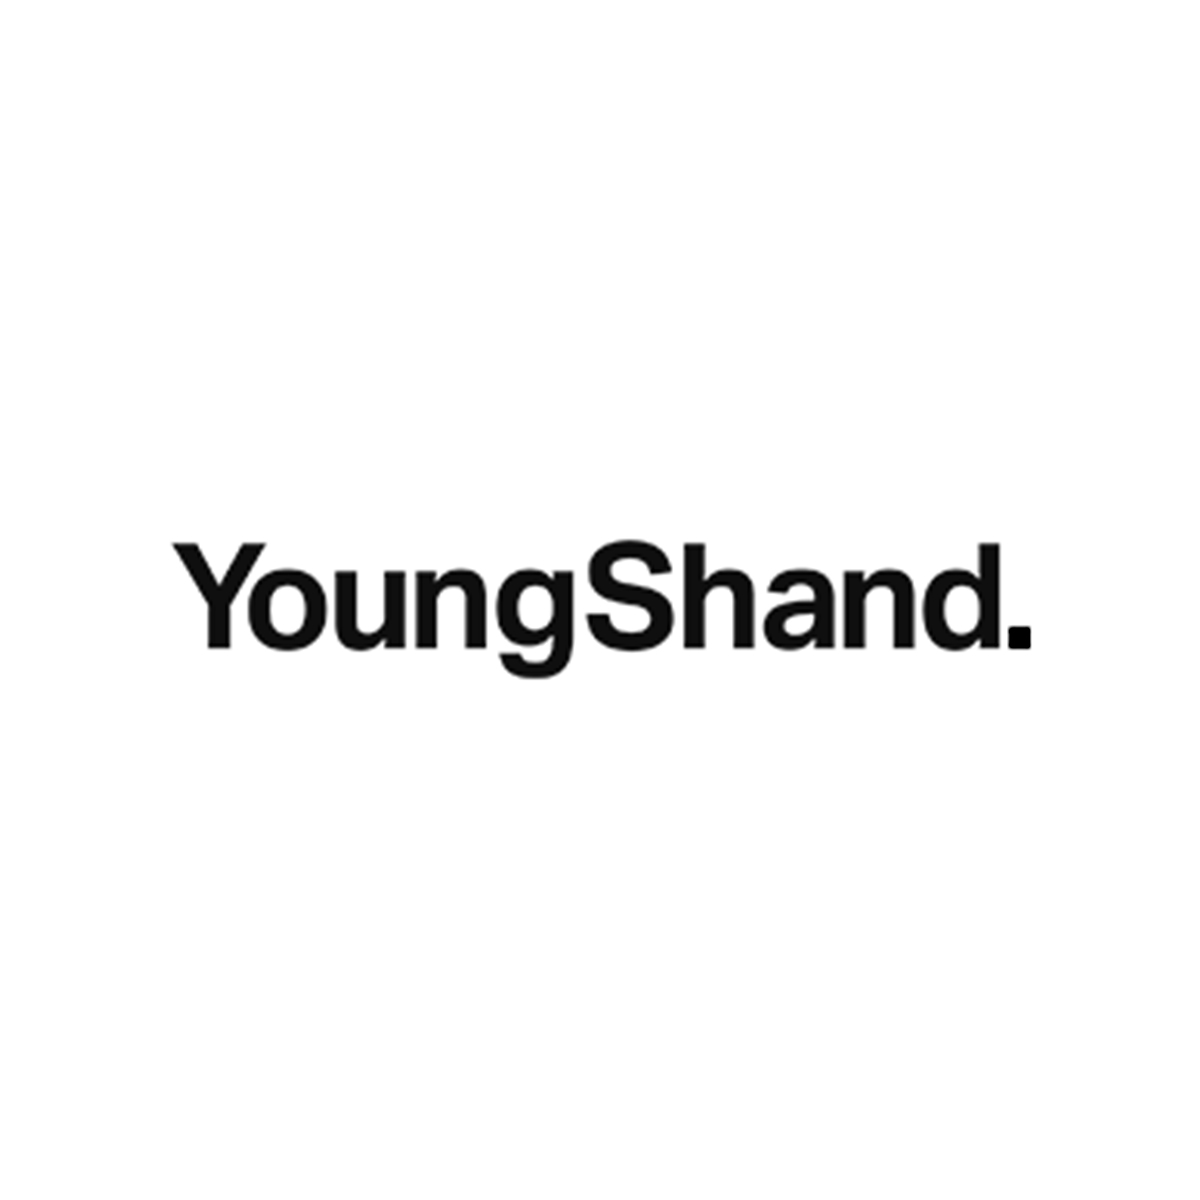 Young&Shand.jpg